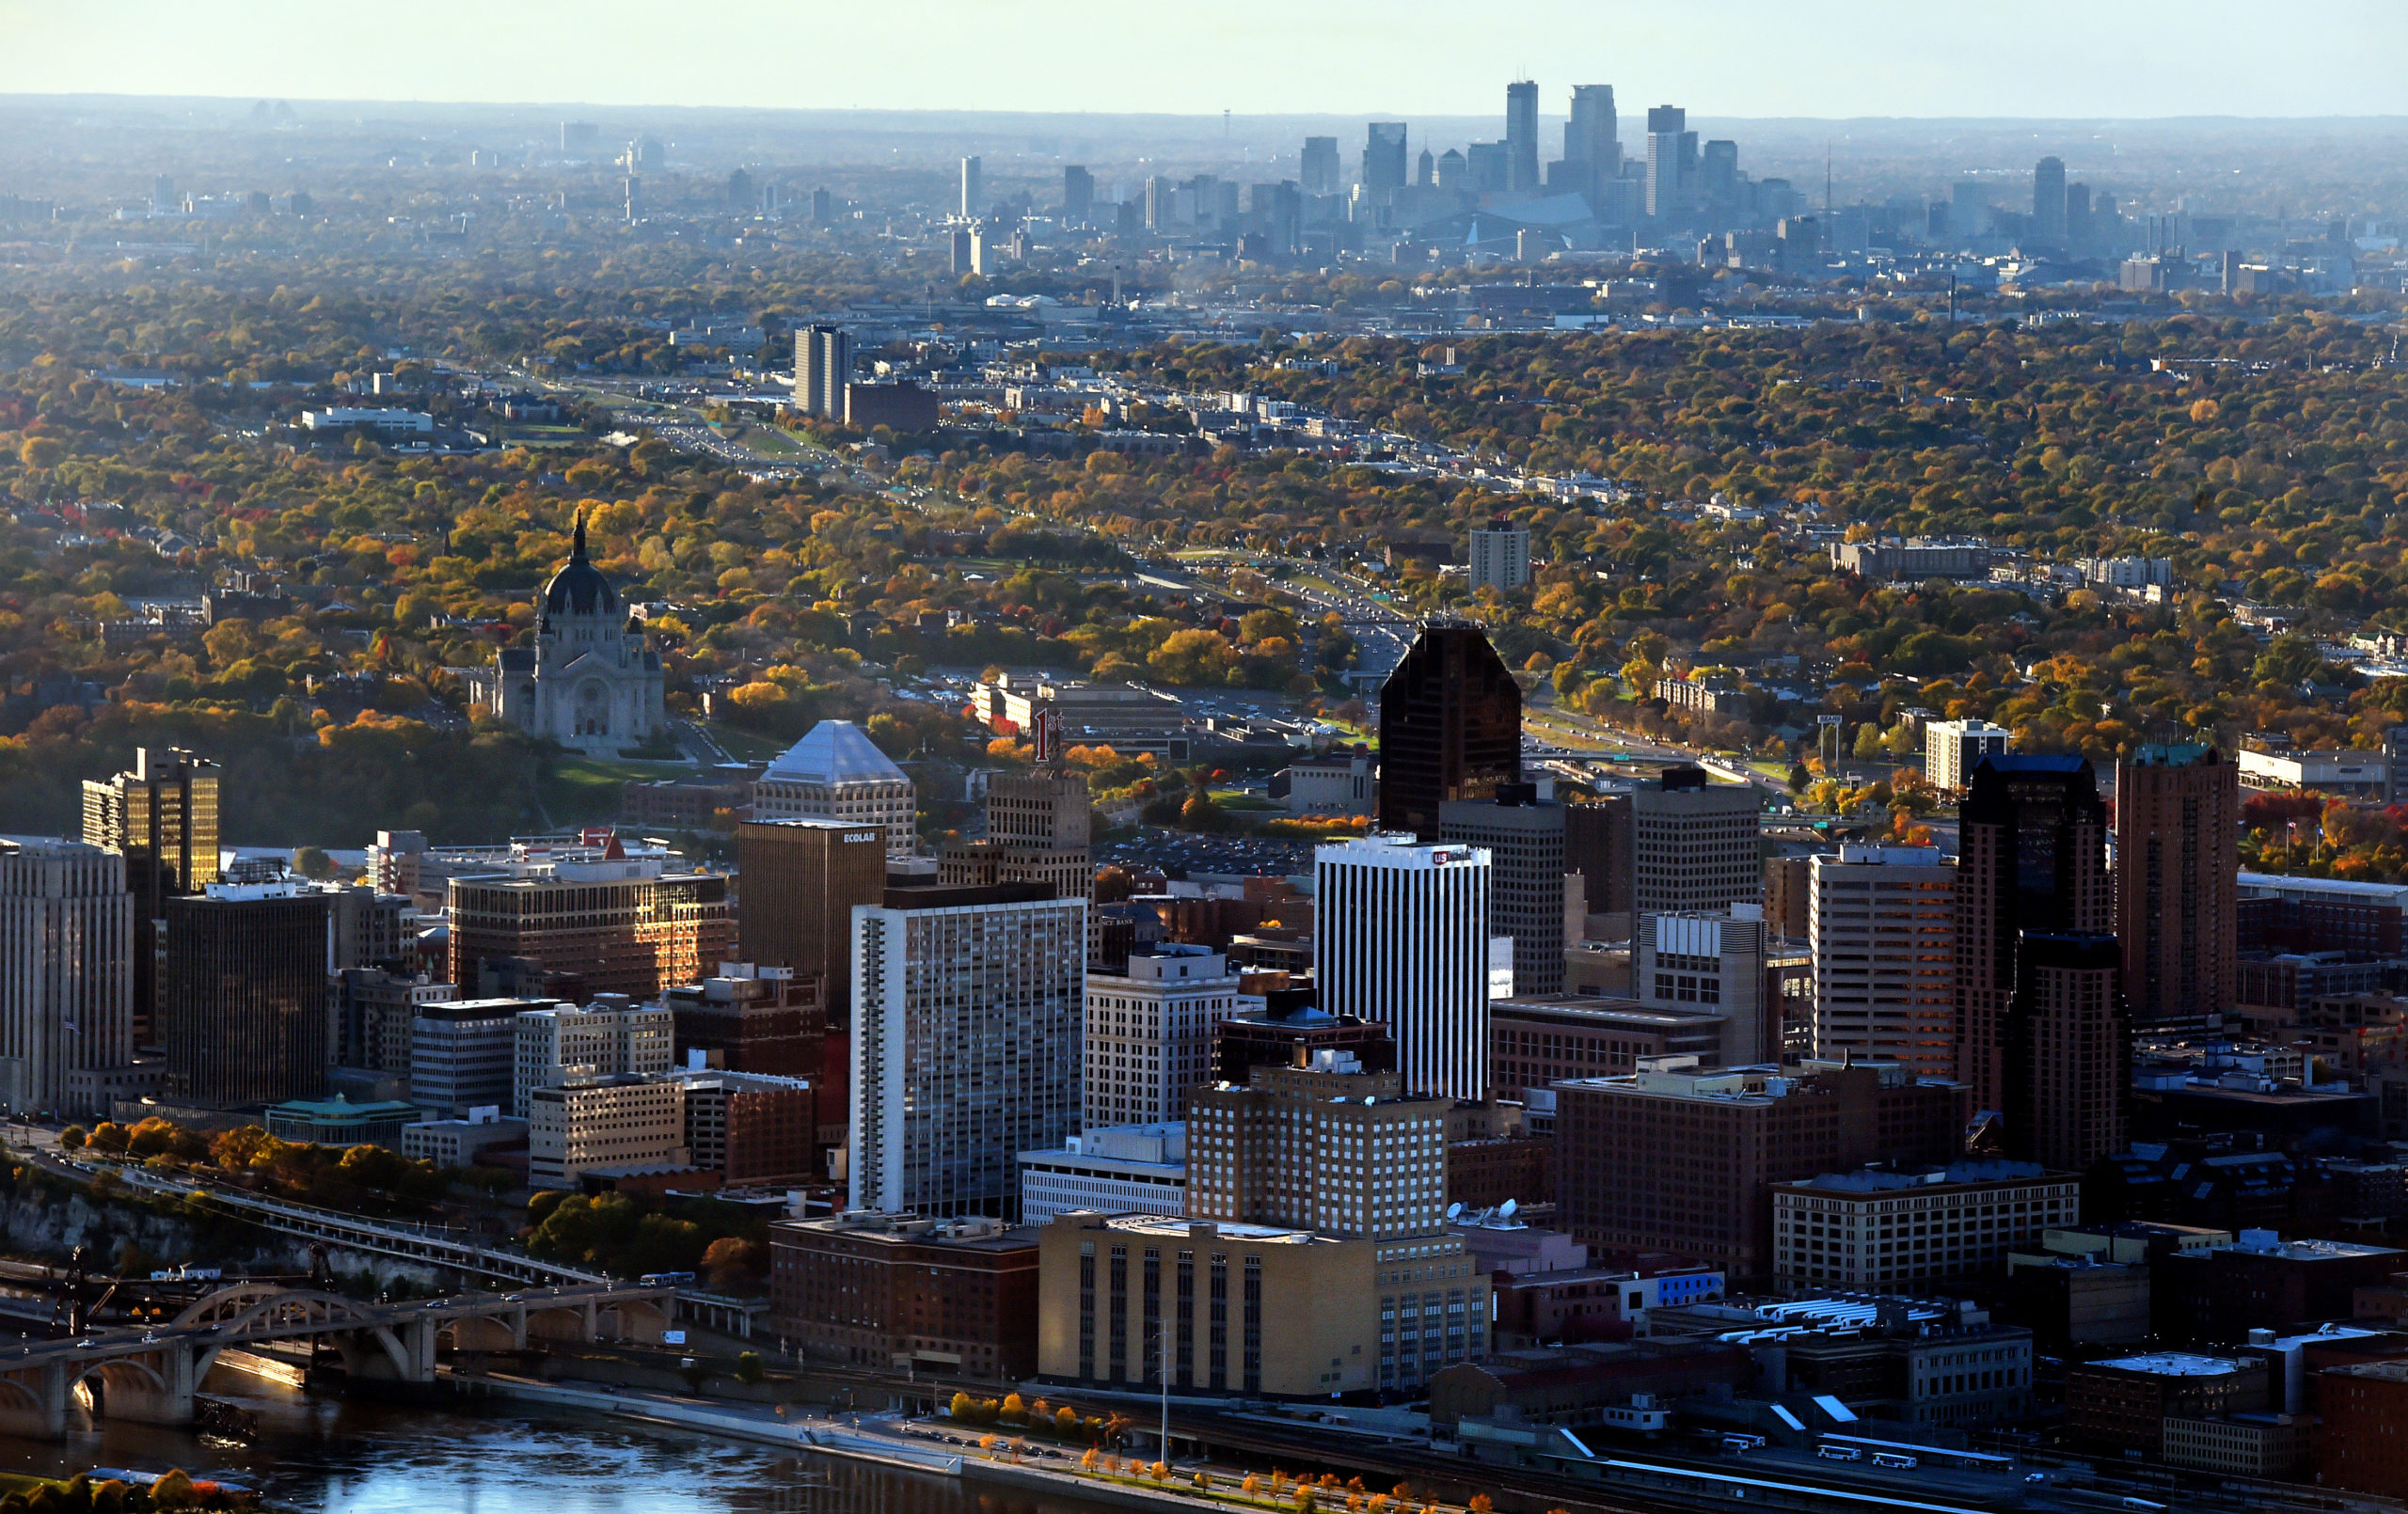 URBAN SPECIALISTS TO HOST DISCUSSION ON ADVANCING POLICE REFORMS IN MINNEAPOLIS